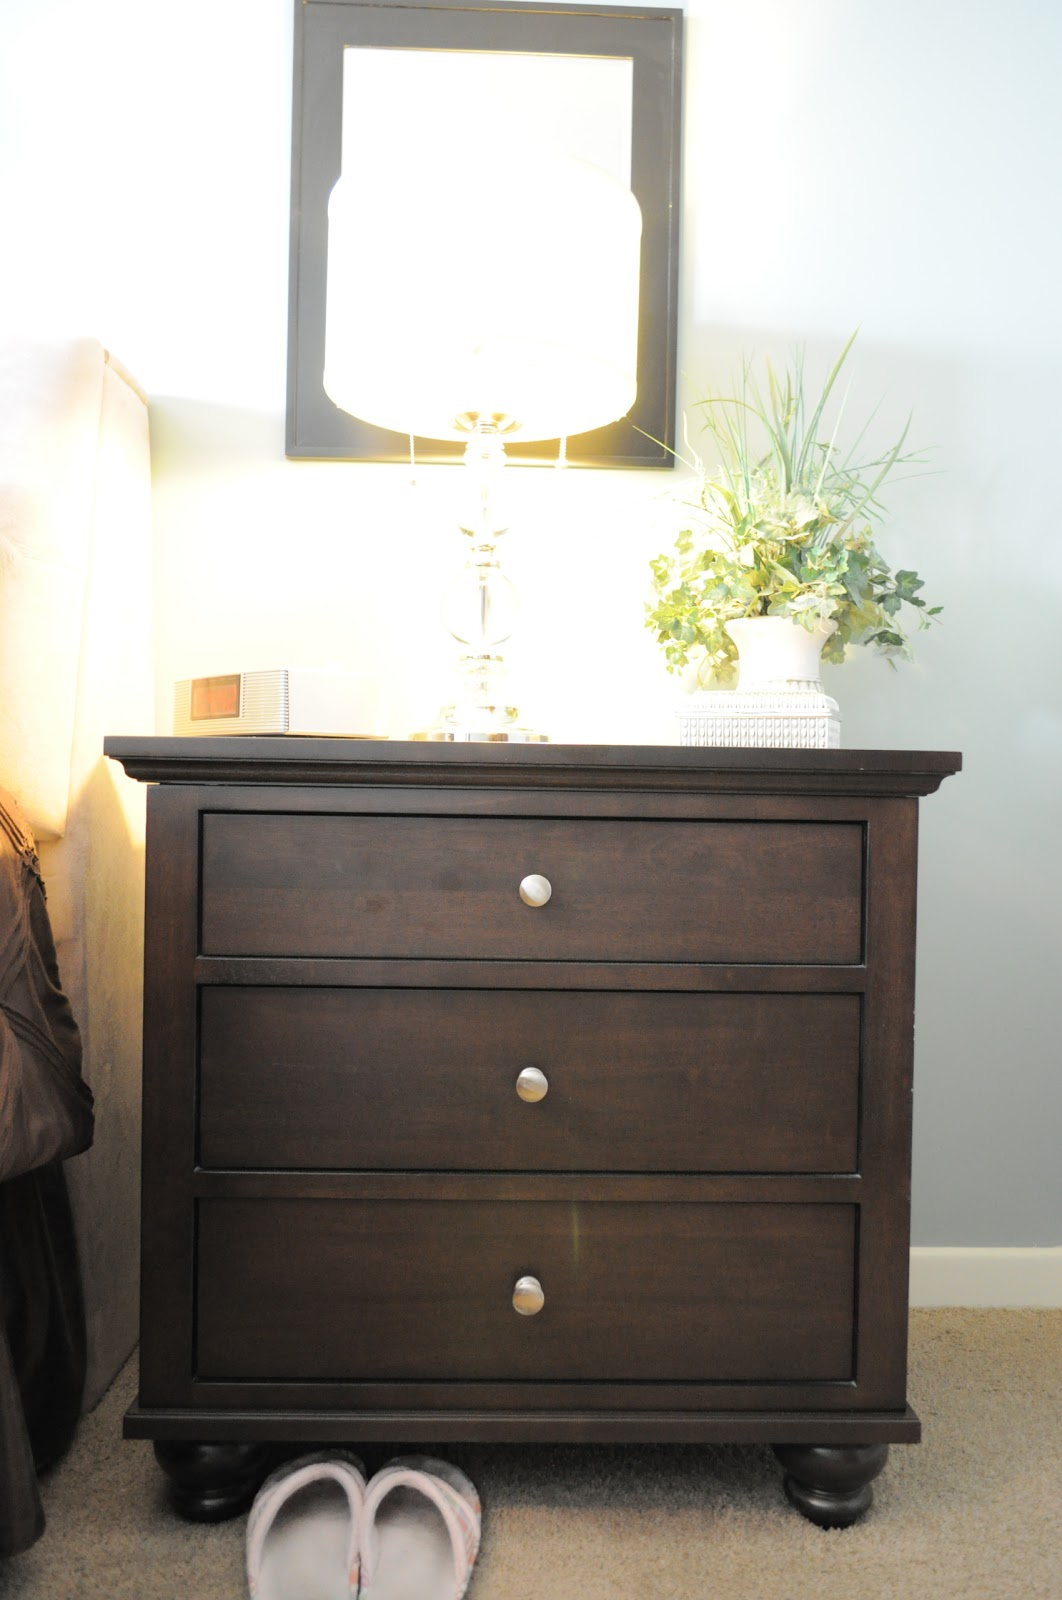 how i organize my bedroom: the nightstands | organizing made fun